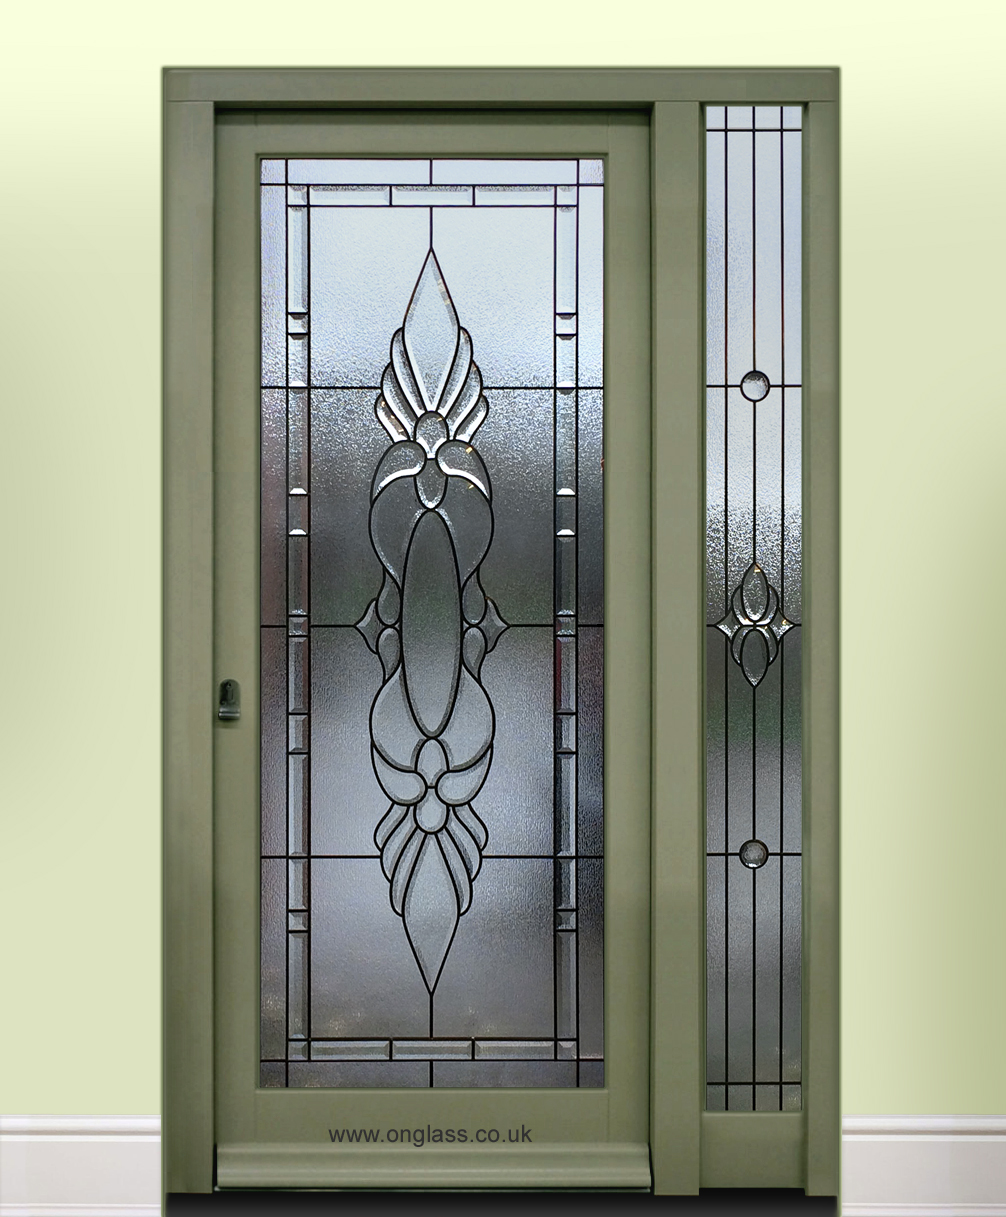 Bevel glass door